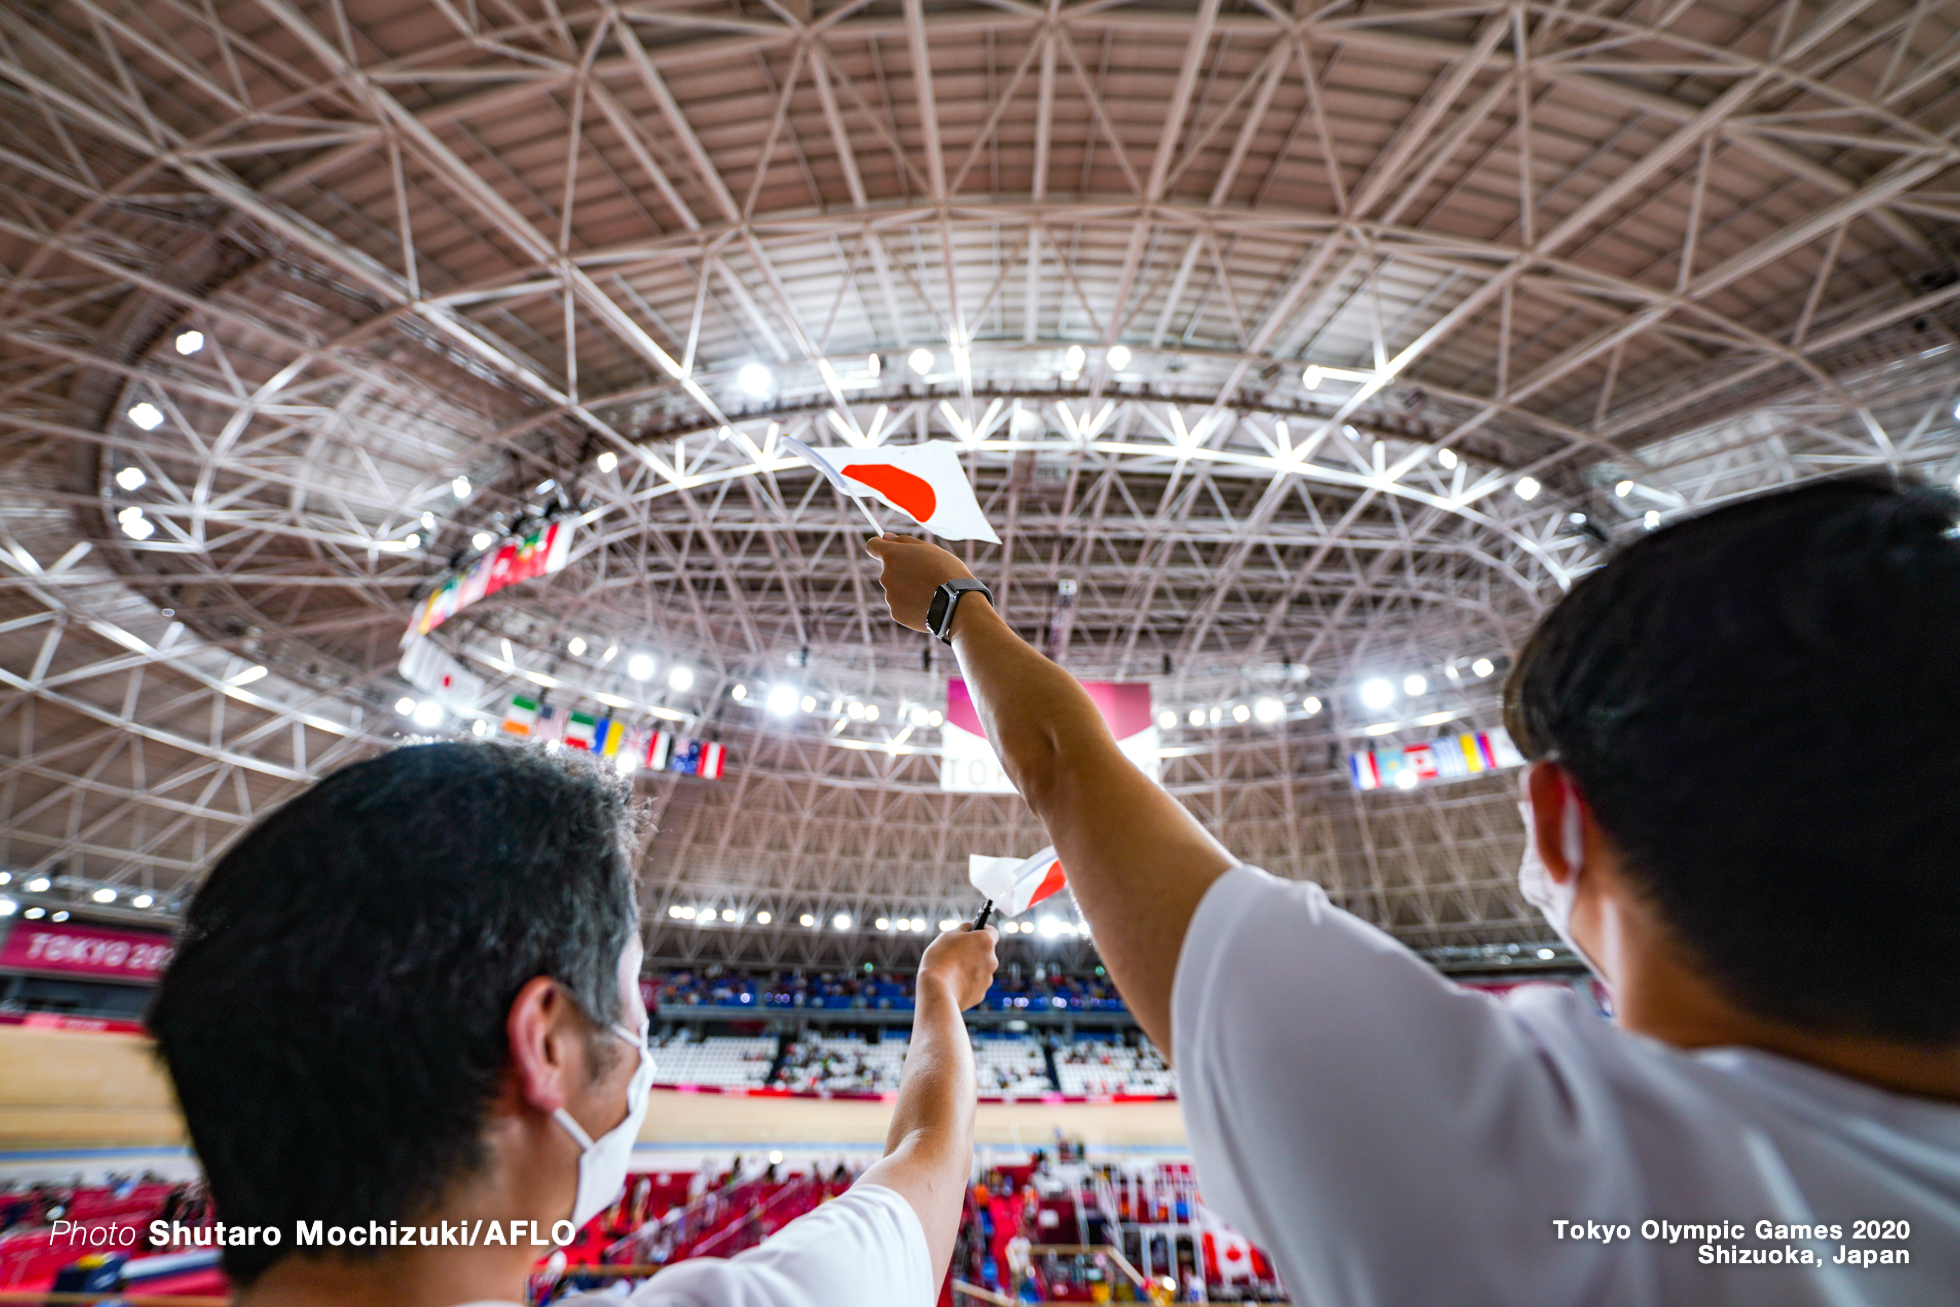 AUGUST 2, 2021 - Cycling : during the Tokyo 2020 Olympic Games at the Izu Velodrome in Shizuoka, Japan. (Photo by Shutaro Mochizuki/AFLO)